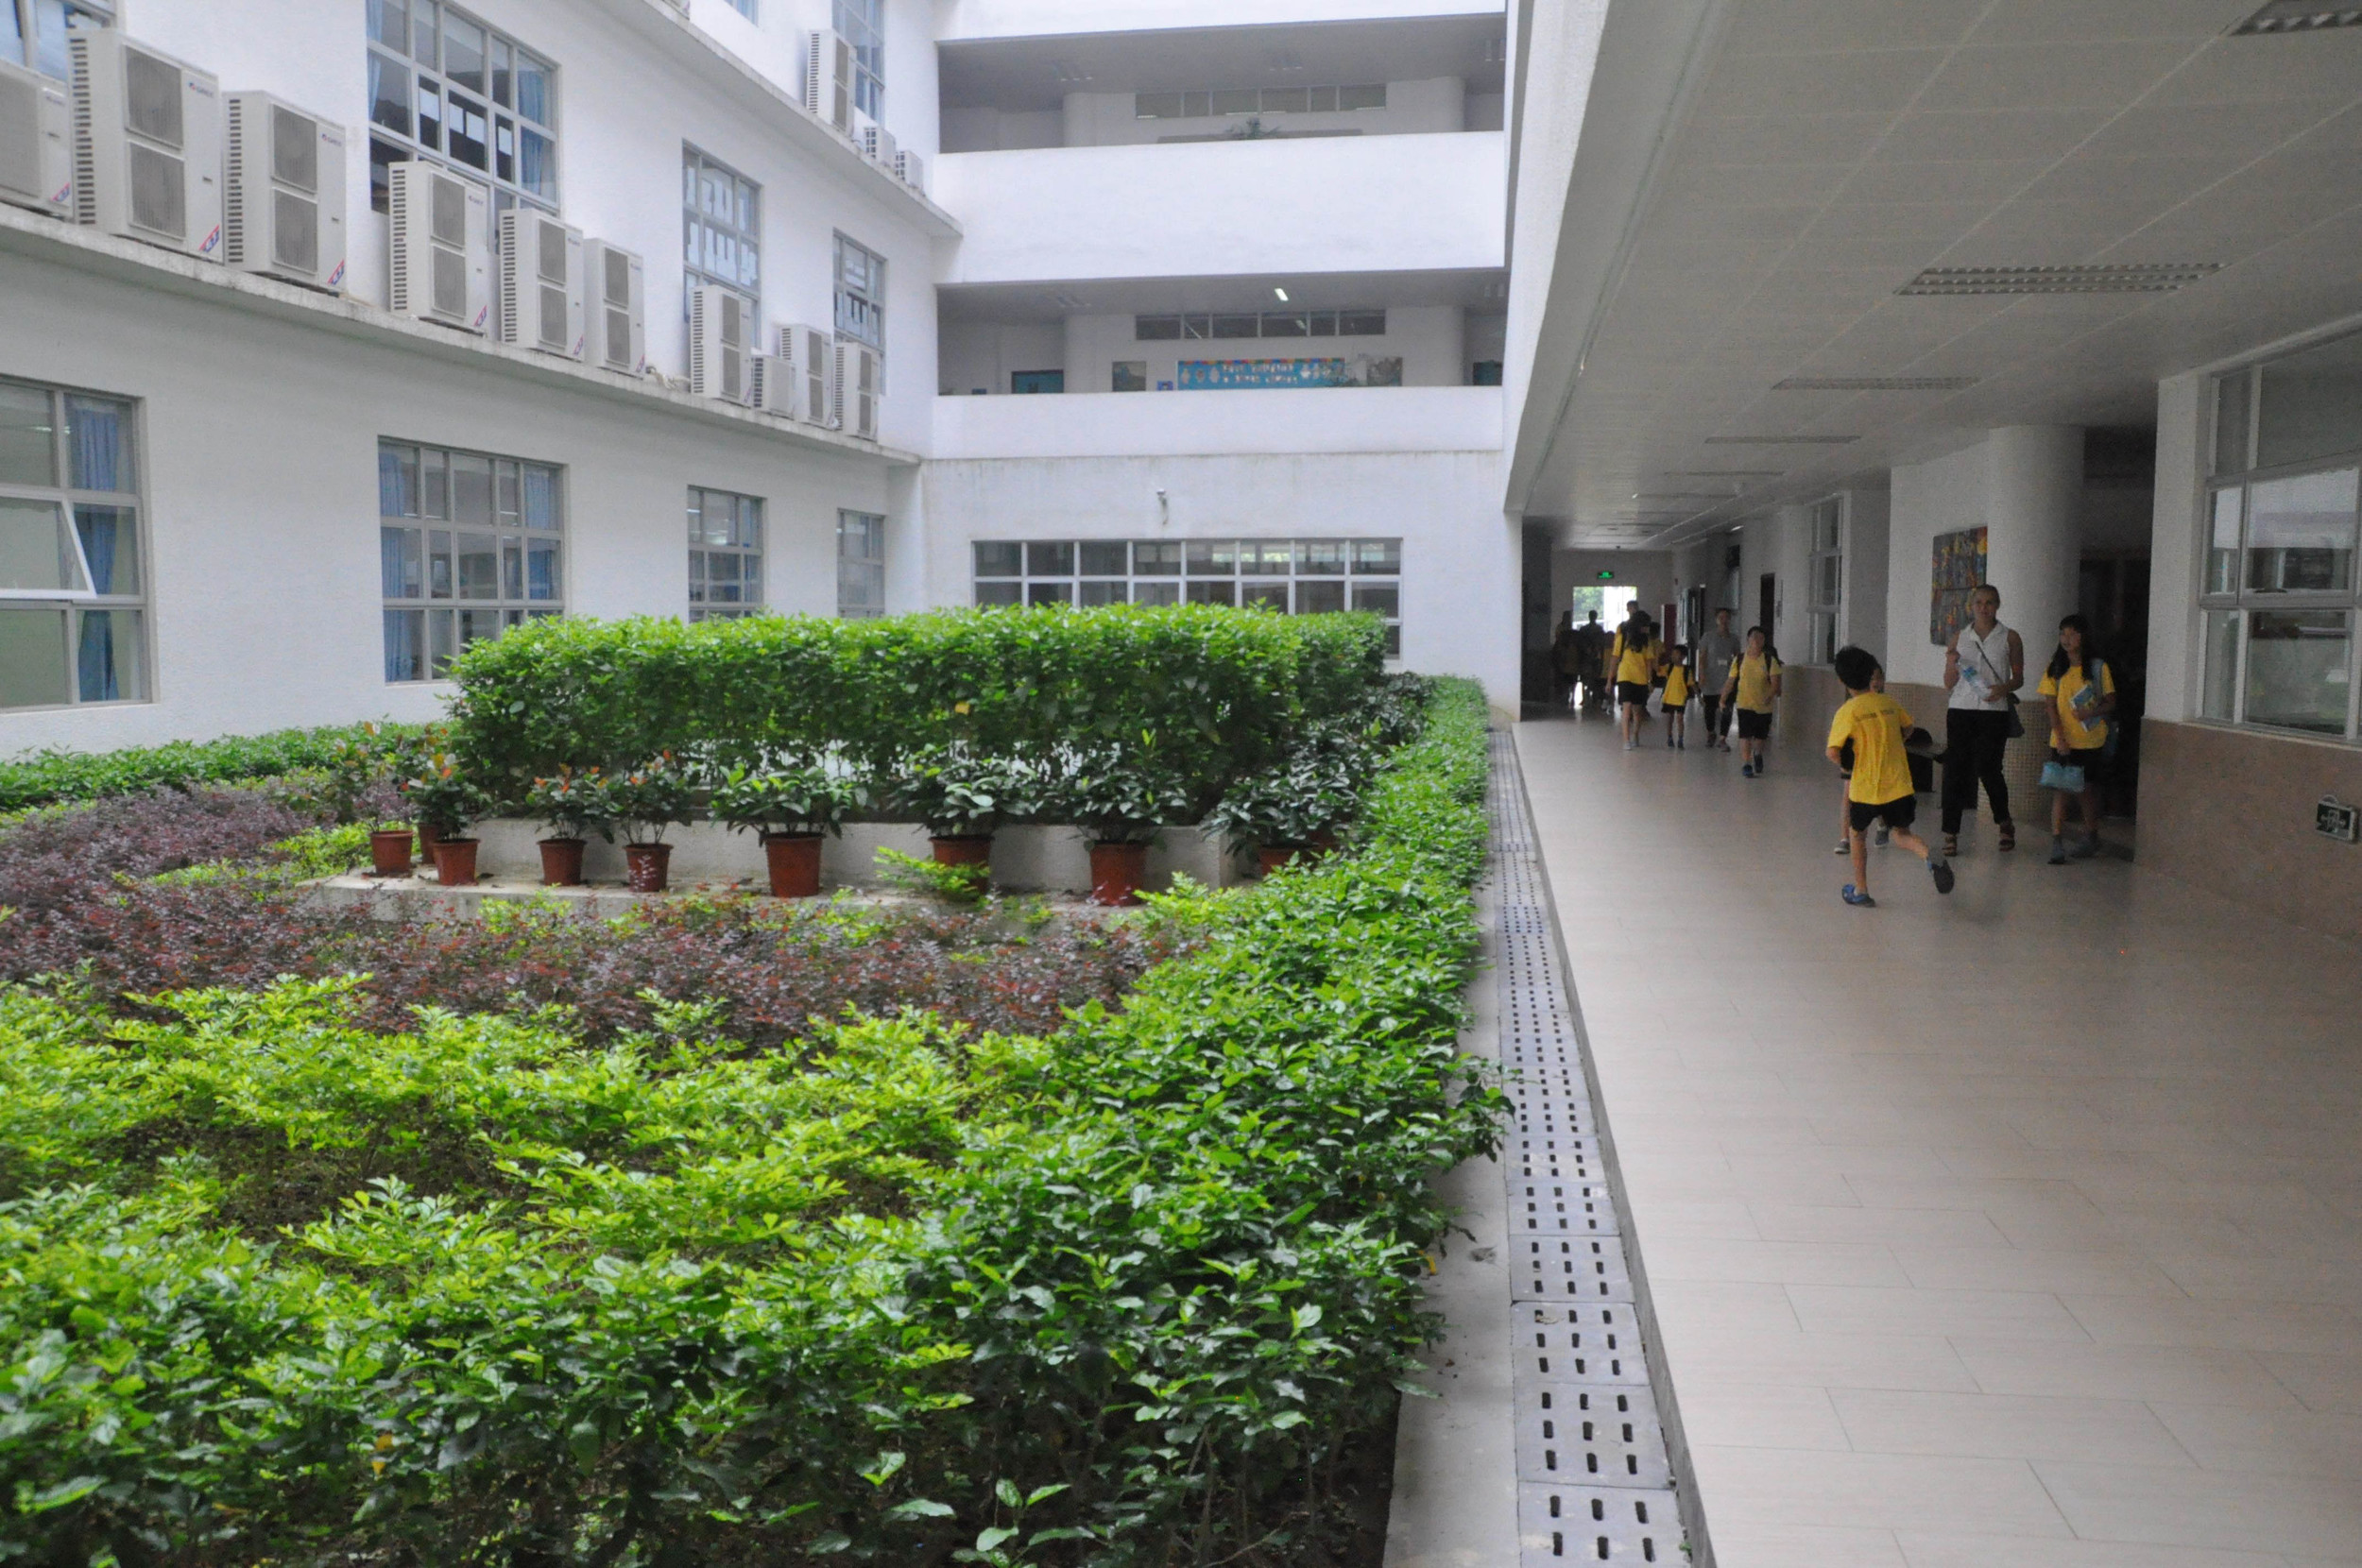 The Inside of the School